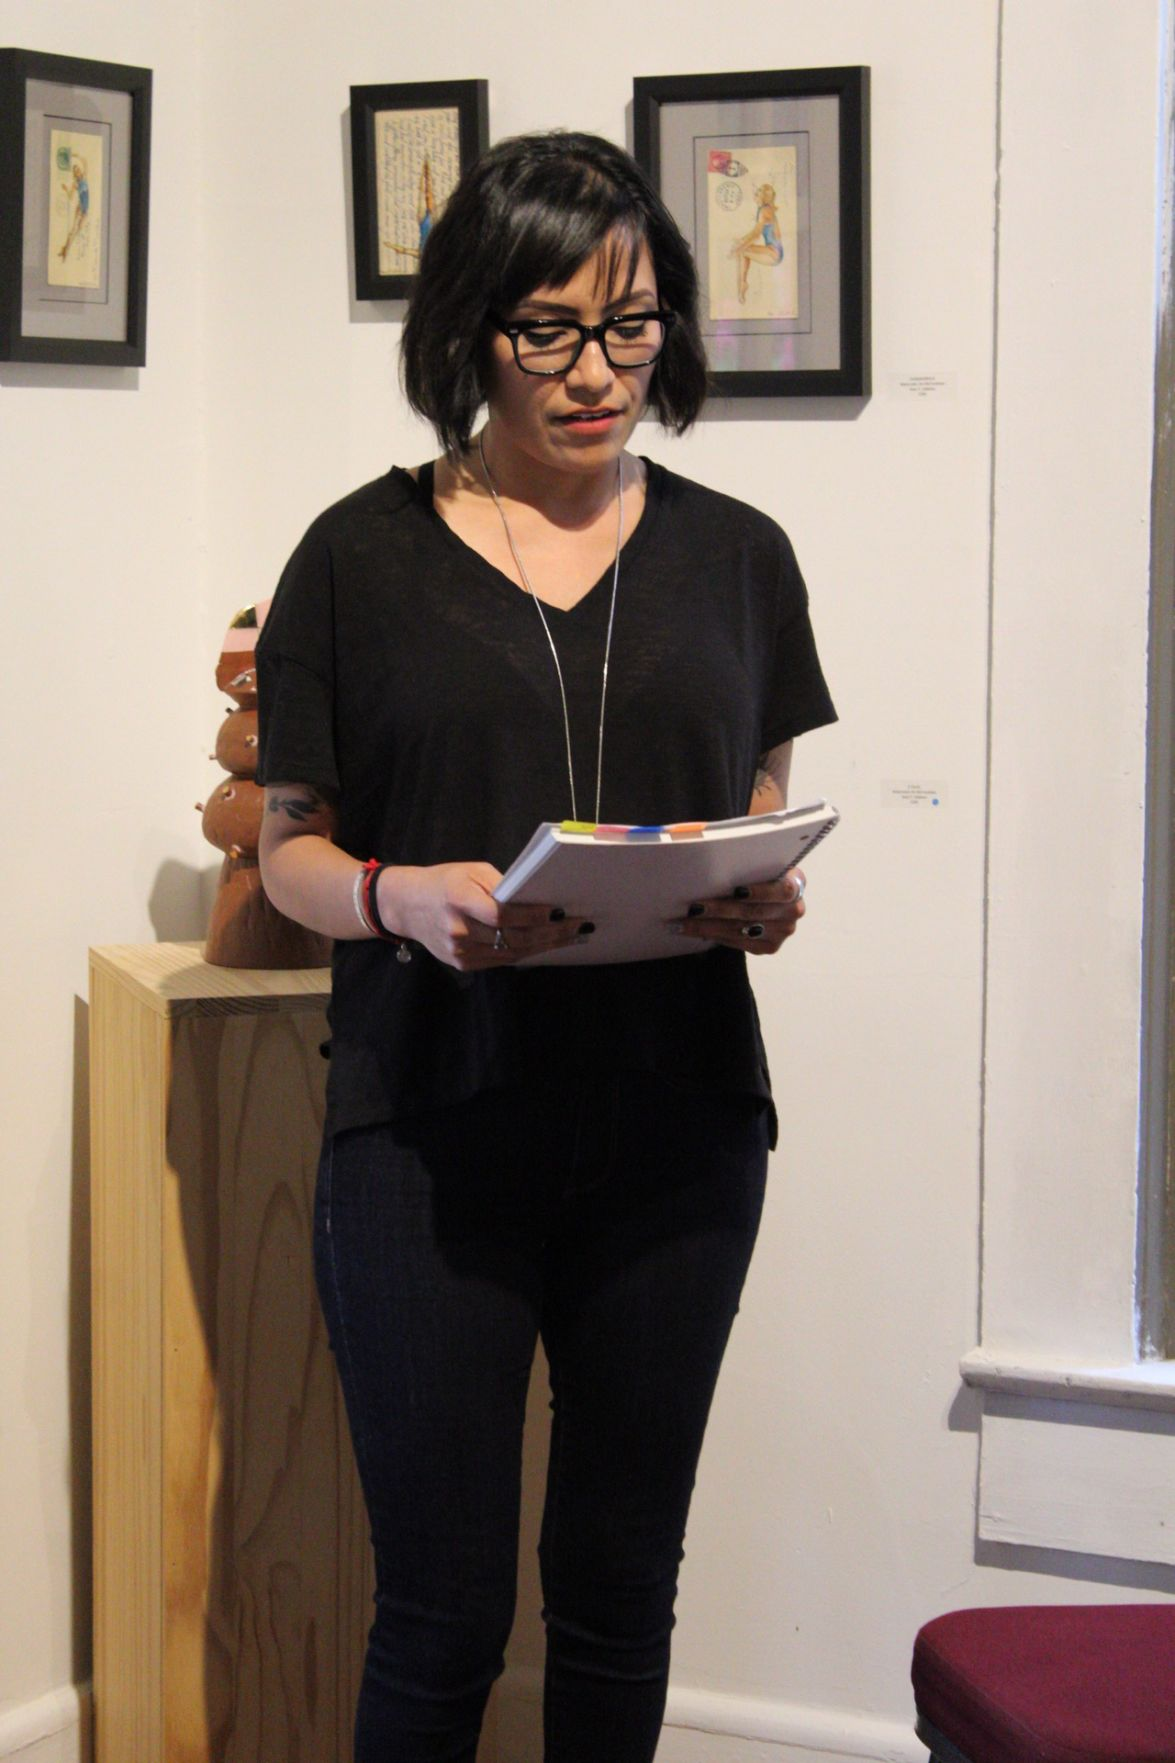 Alma Young reads a letter that was sent by a detainee in Irwin County Detention Center.